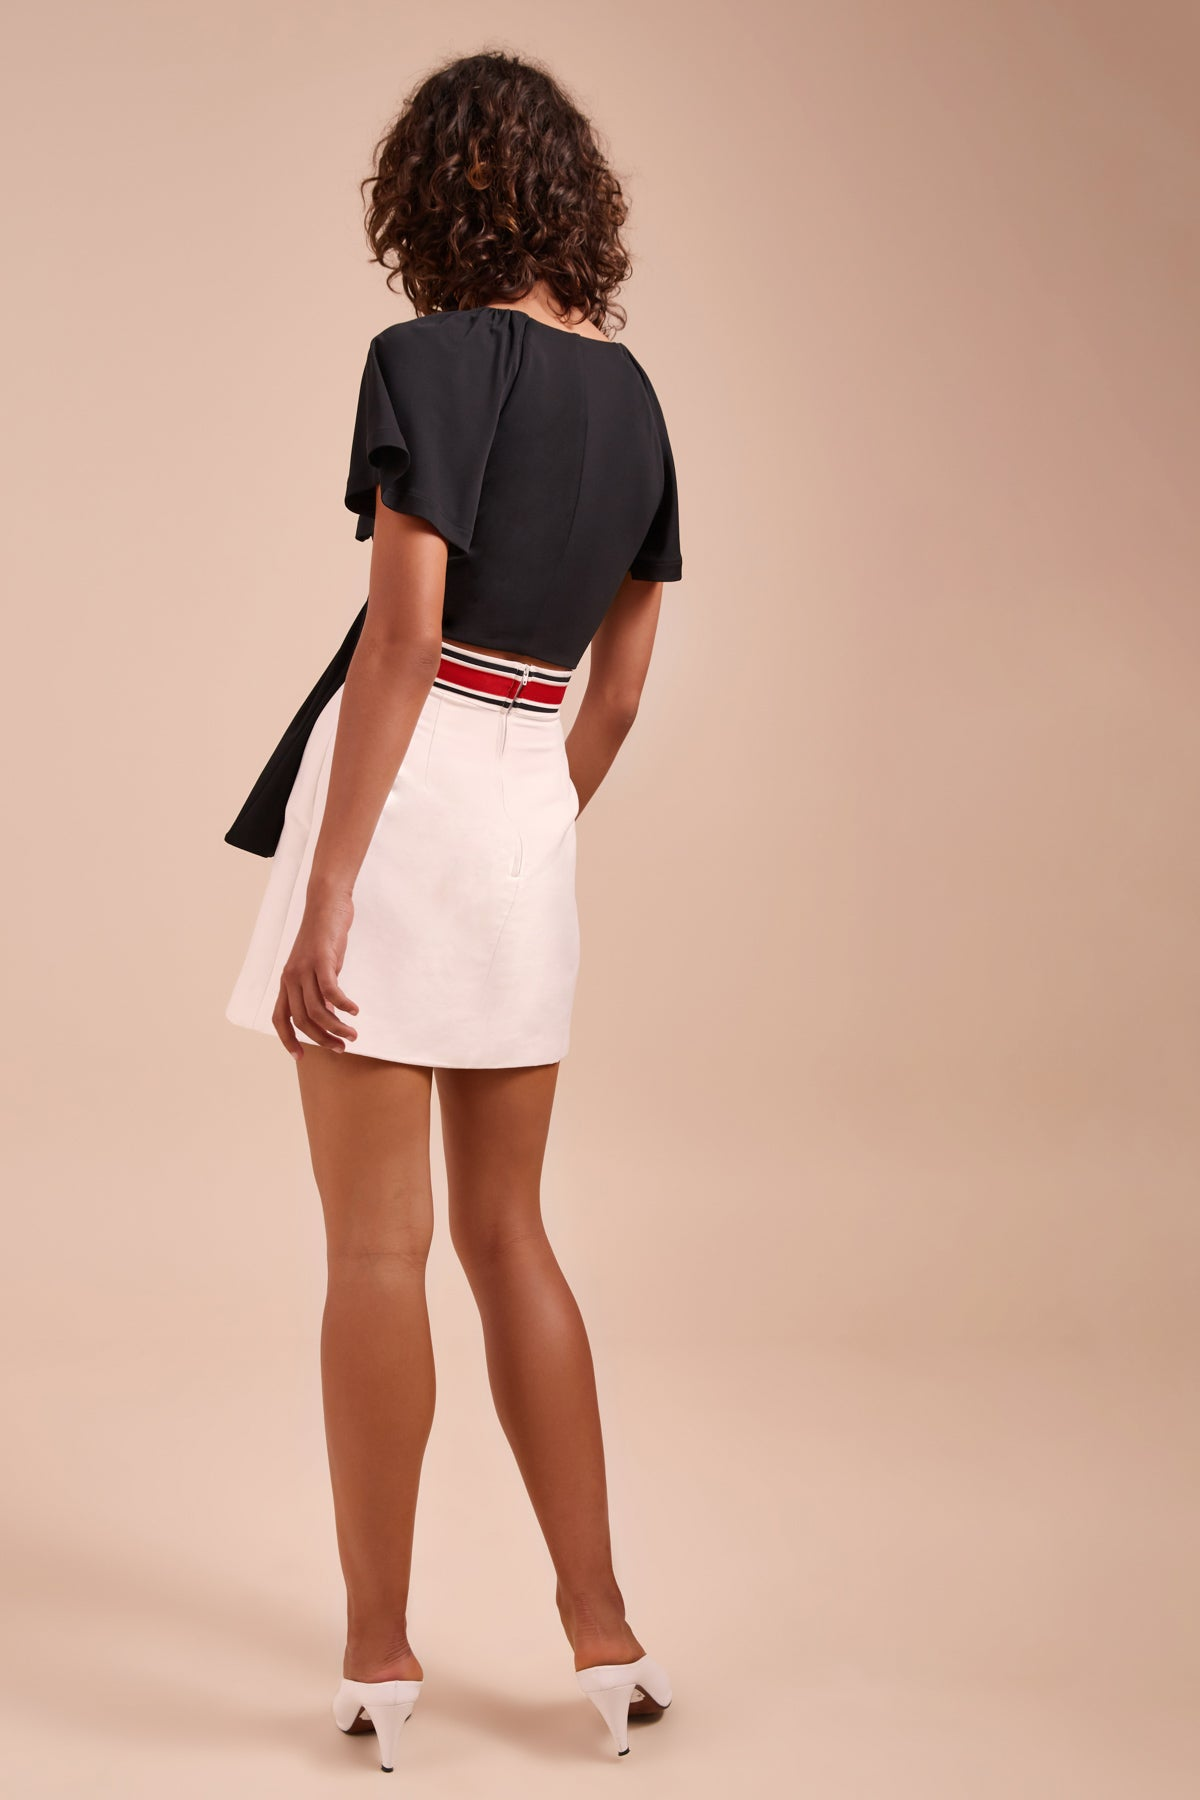 TOTALITY SKIRT ivory